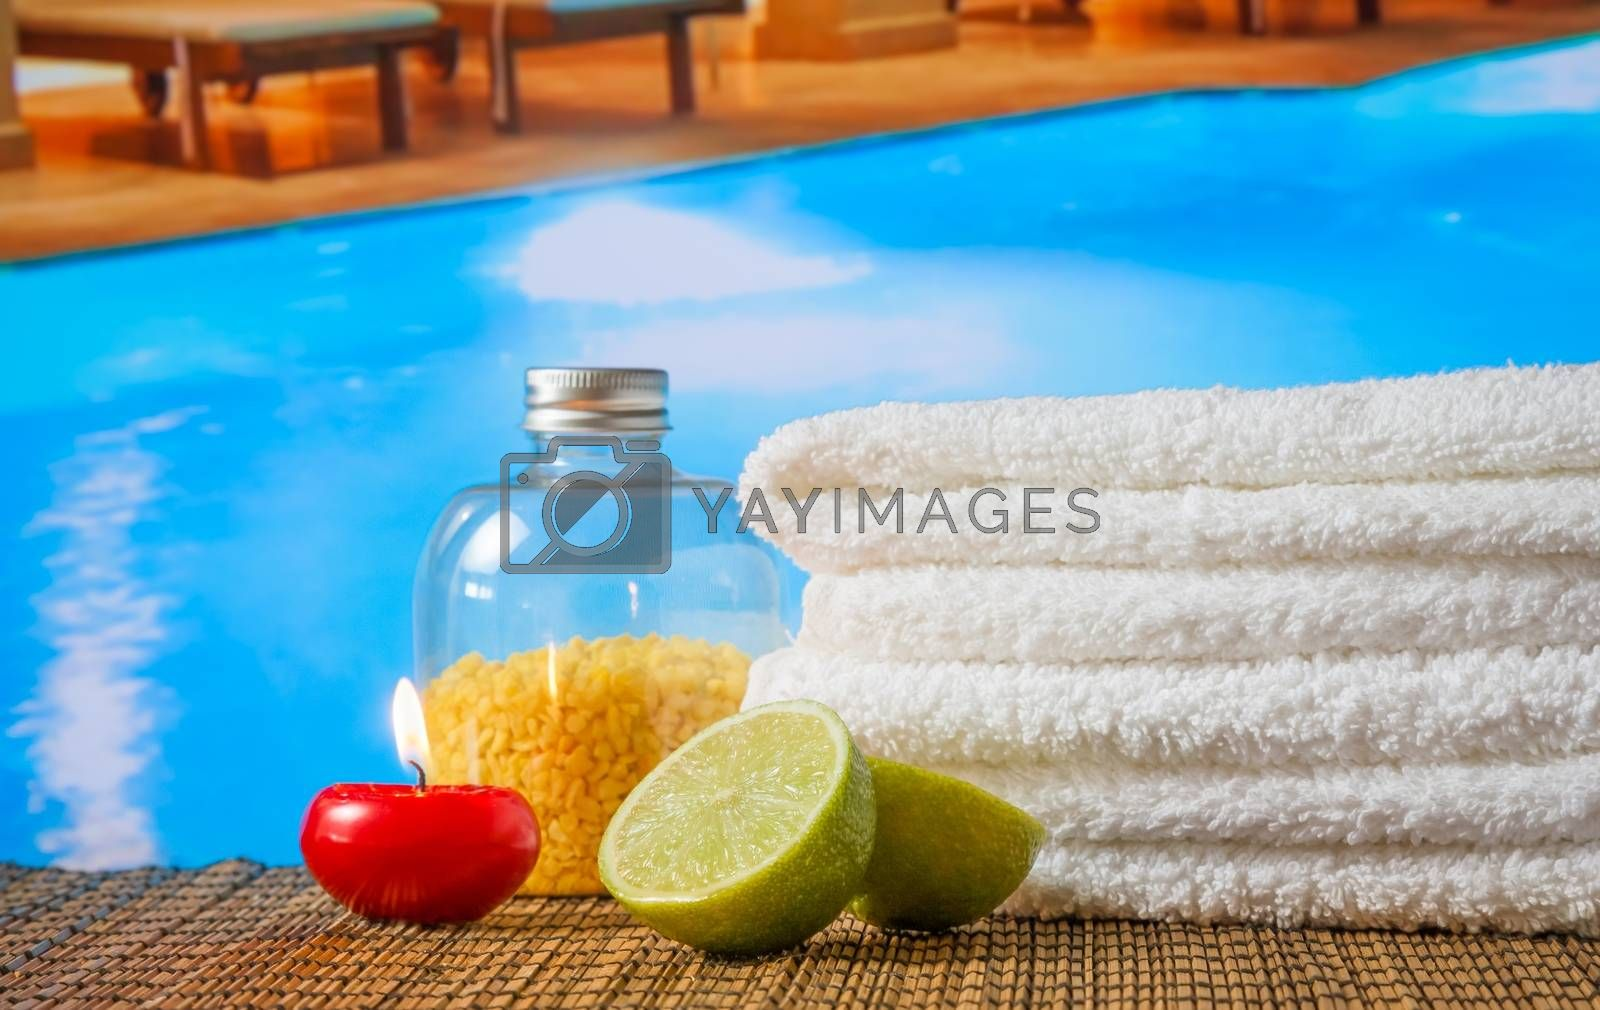 Spa massage border background with towel stacked,red candle and lime near swimming pool by donfiore